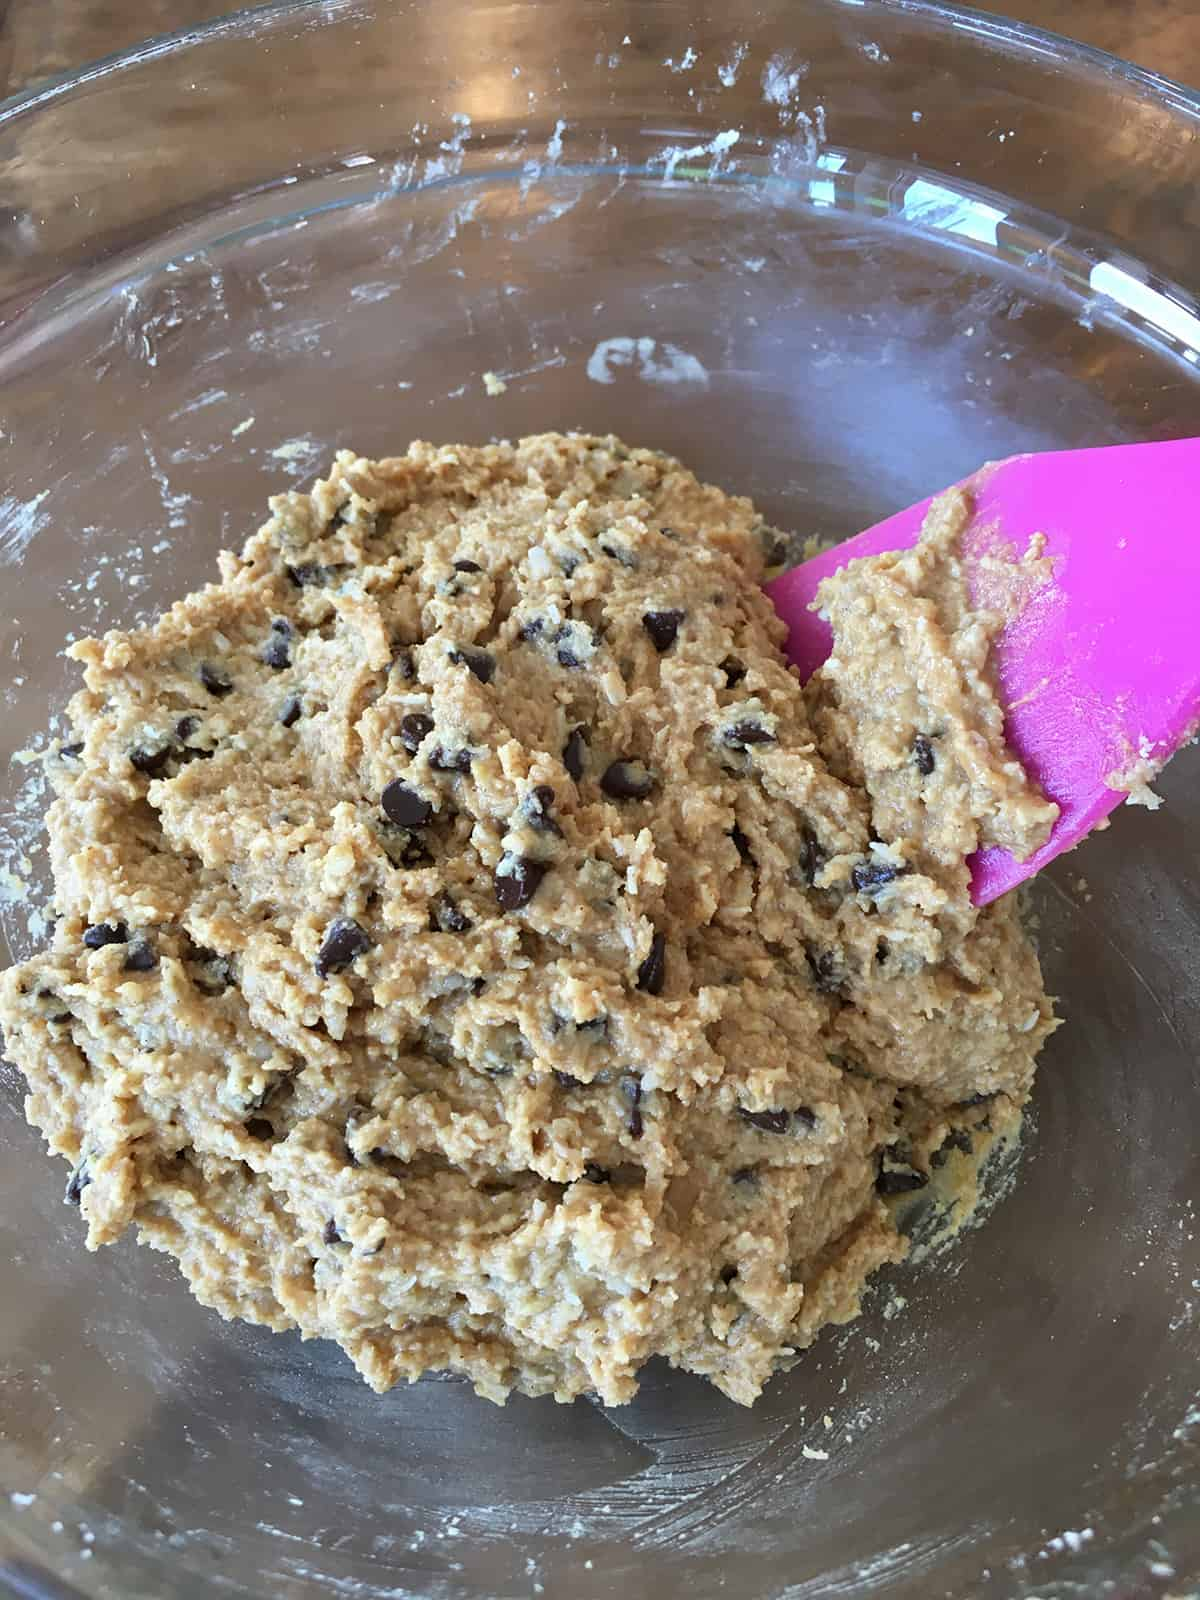 Protein ball batter with chocolate chips in a glass bowl with a purple silicone spatula